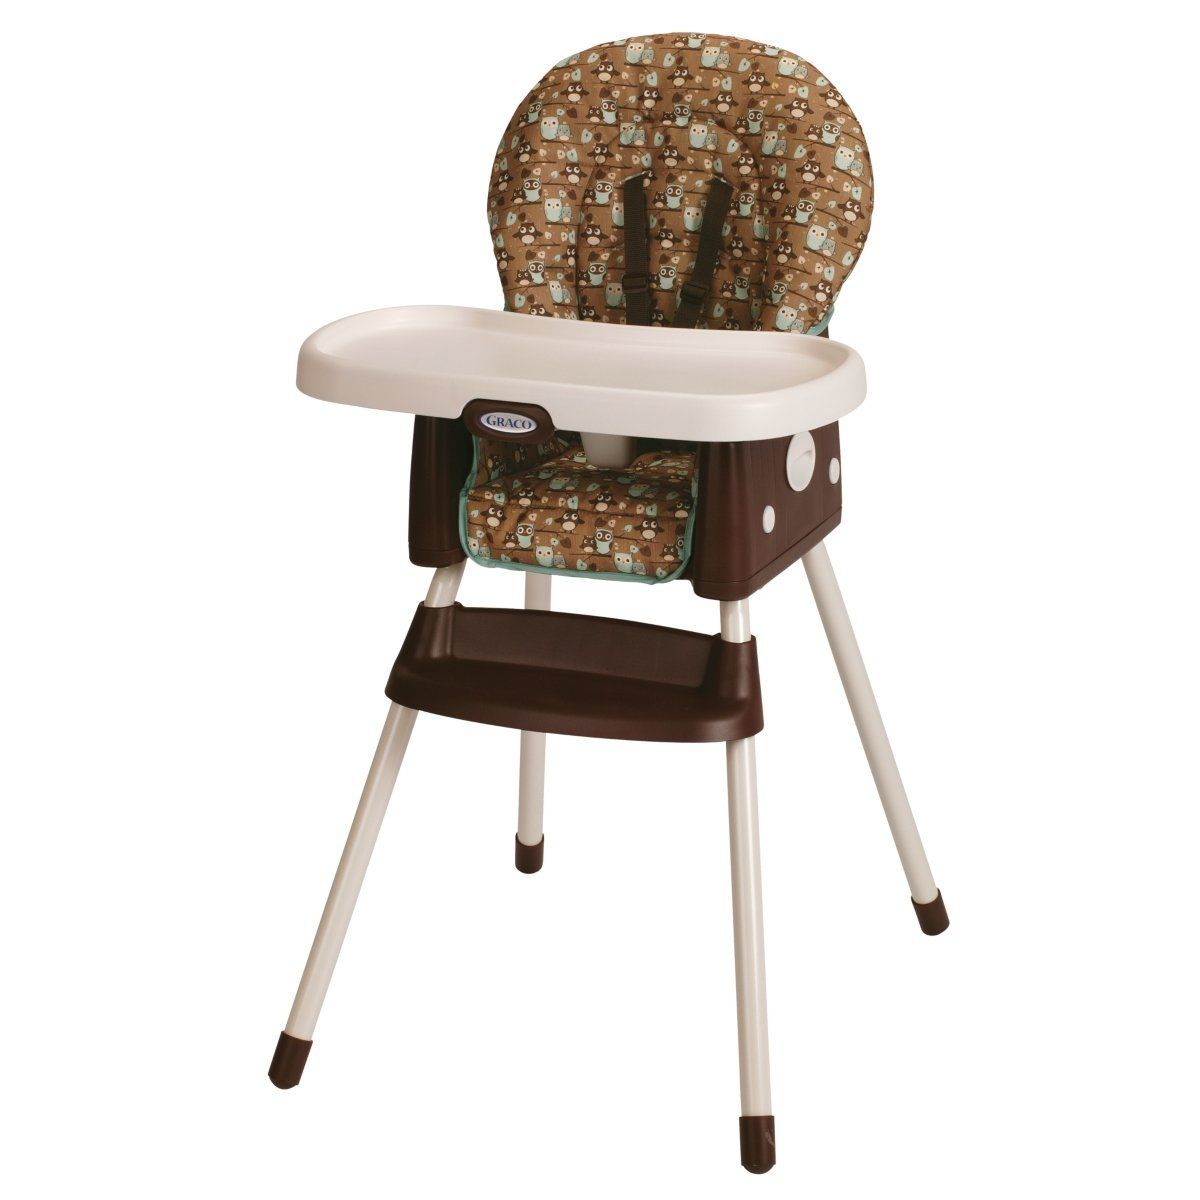 Graco Simpleswitch Convertible High Chair And Booster Little Hoot